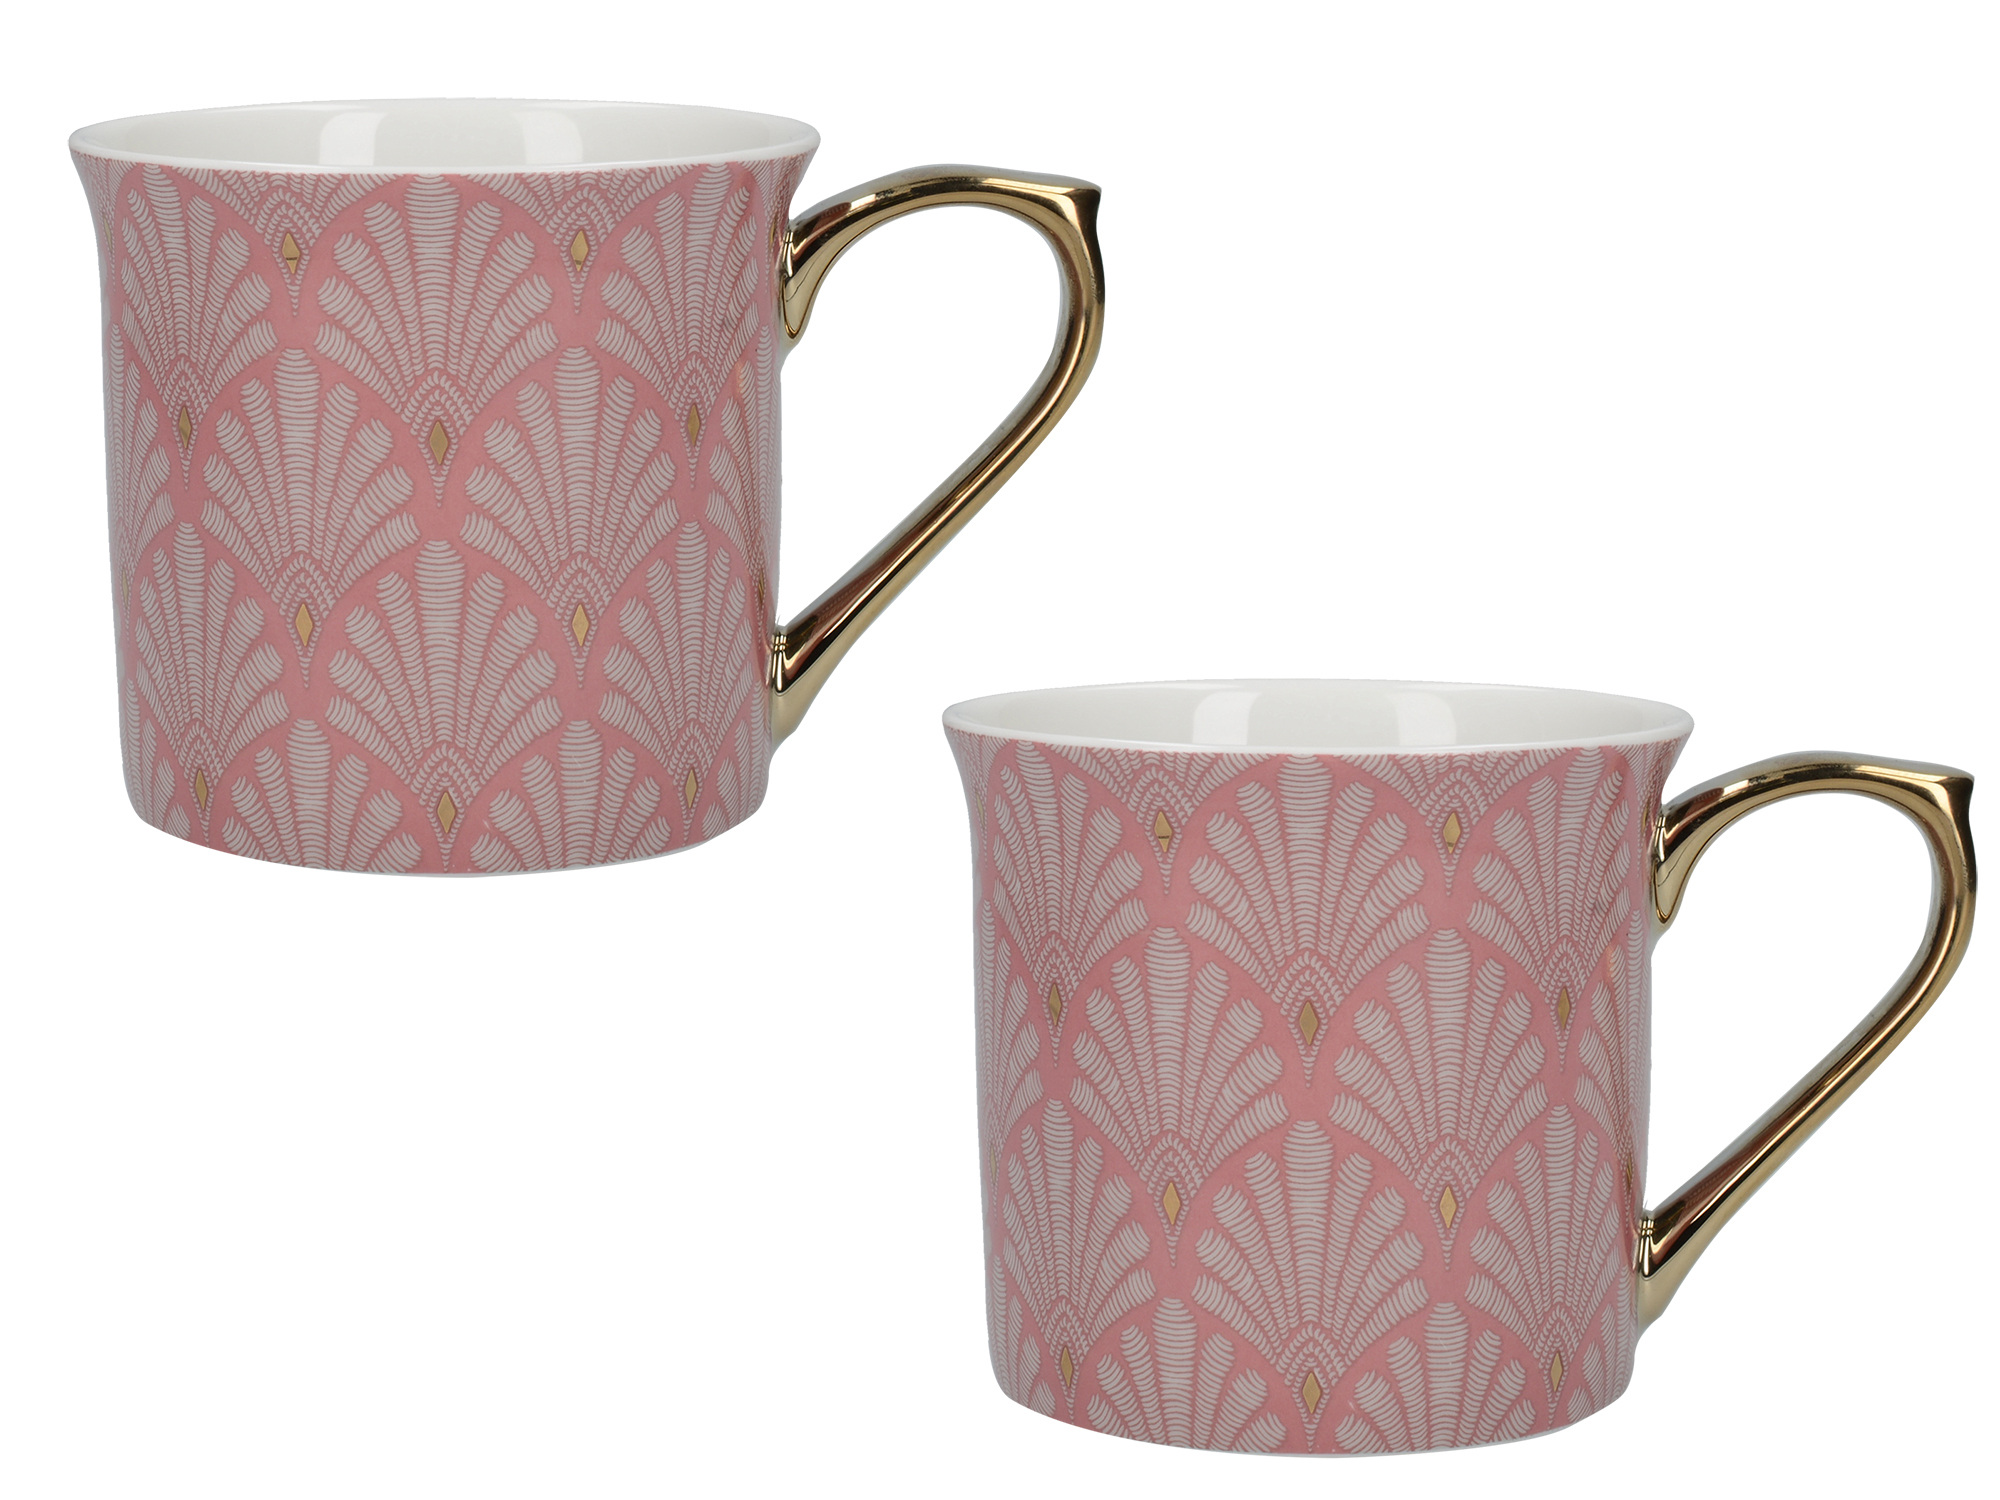 Victoria And Albert Scallop Shells Set Of 2 Palace Mugs Pink